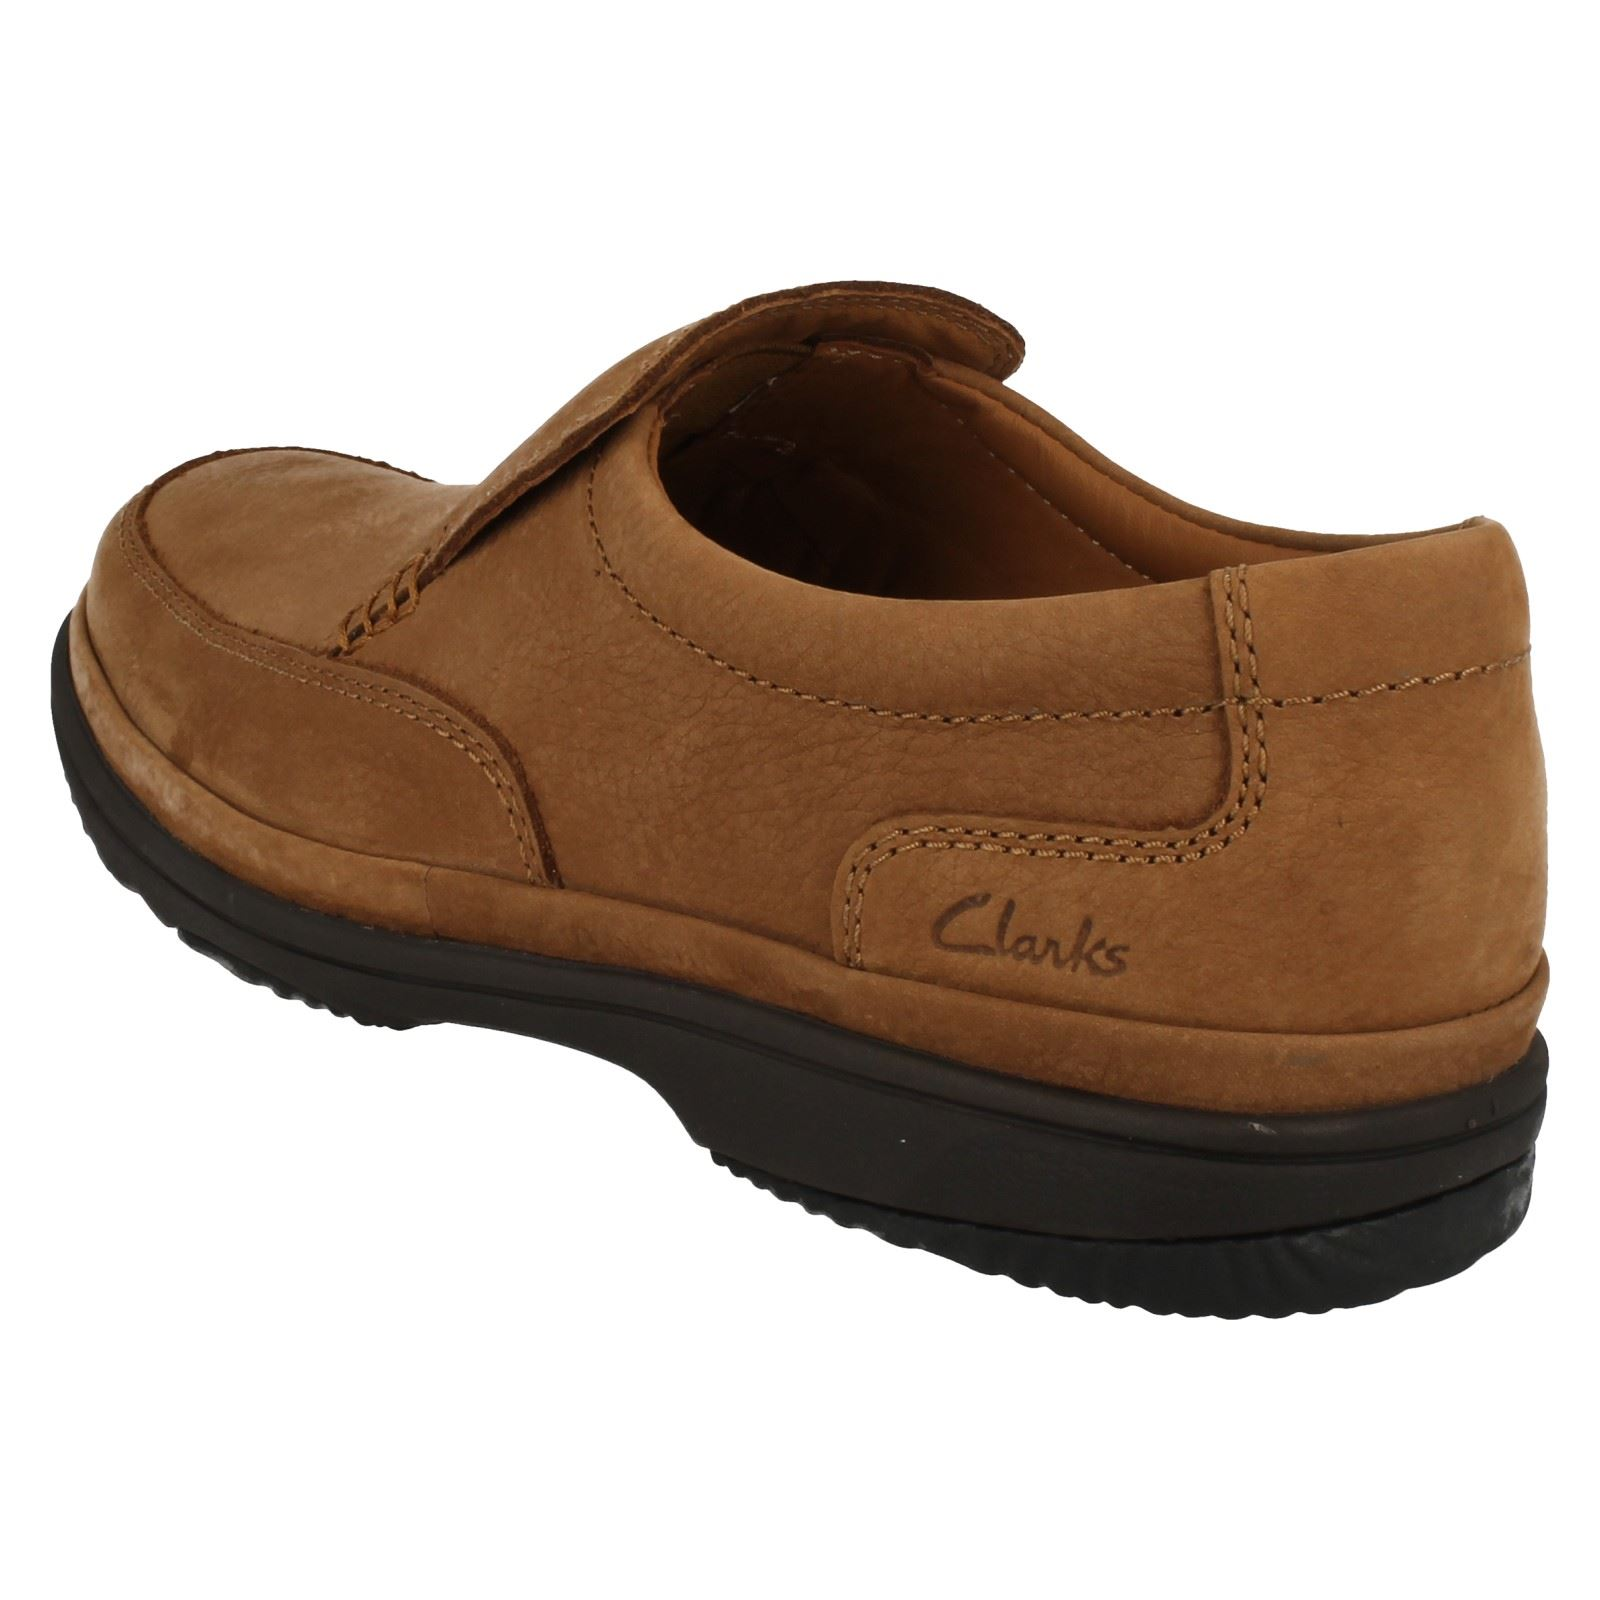 Black Women's Shoes: insurancecompanies.cf - Your Online Women's Shoes Store! Get 5% in rewards with Club O!